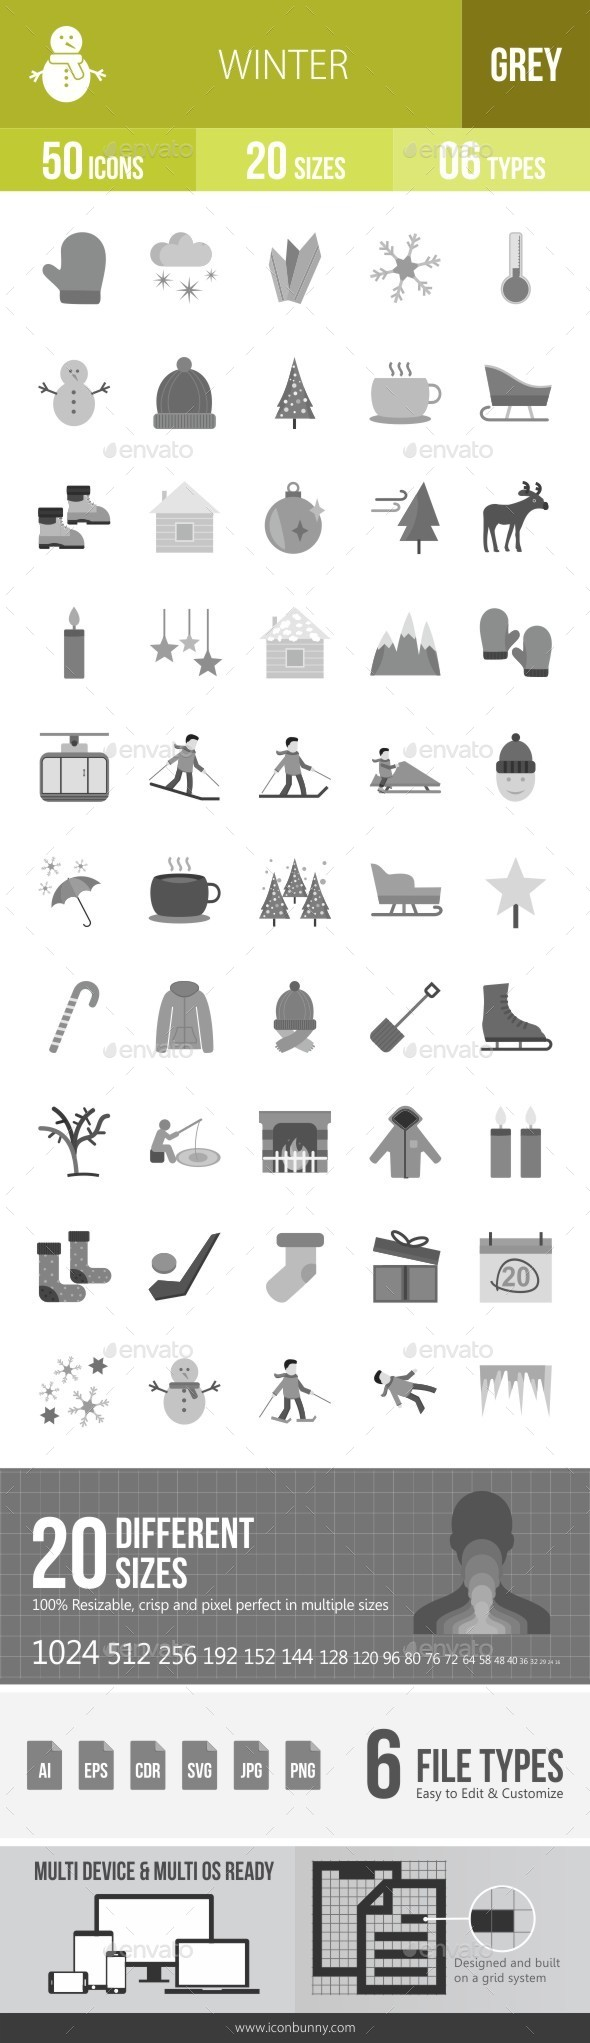 Winter Greyscale Icons - Icons